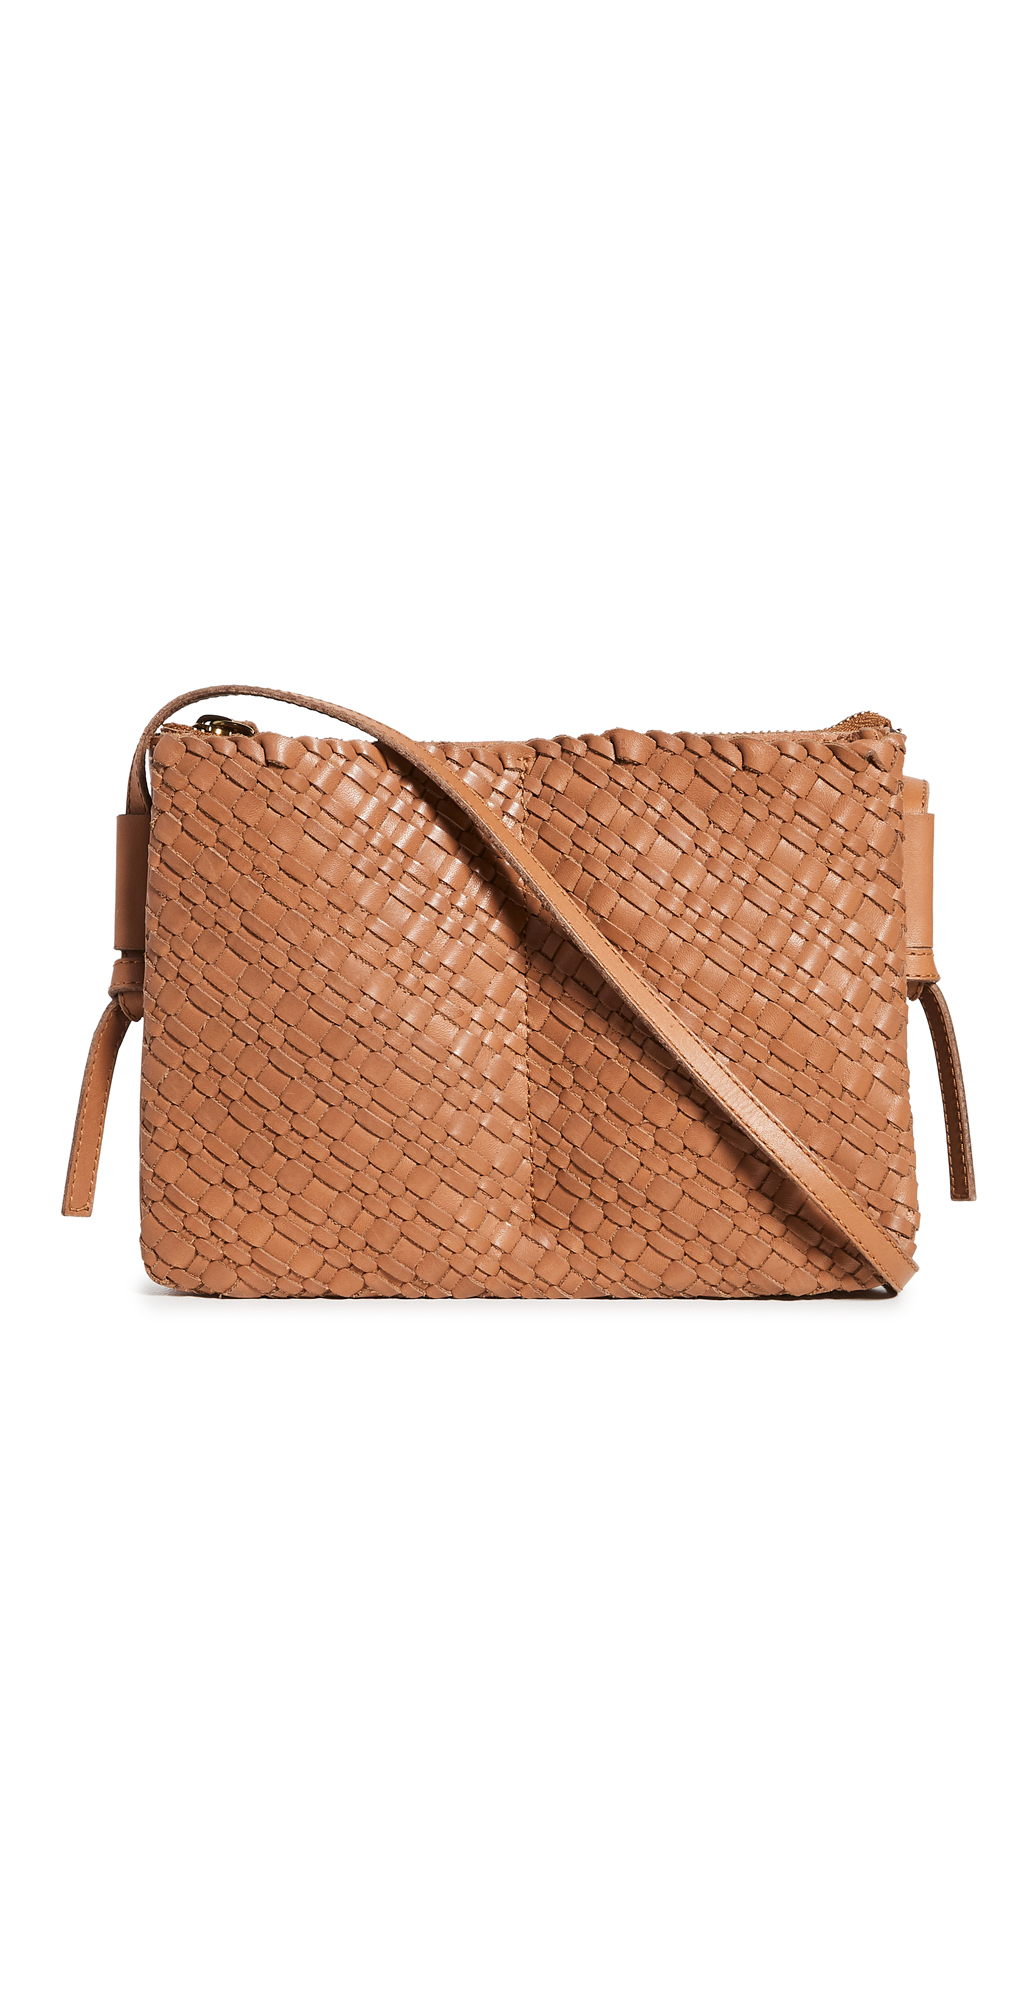 Madewell The Knotted Crossbody Bag in Woven Leather